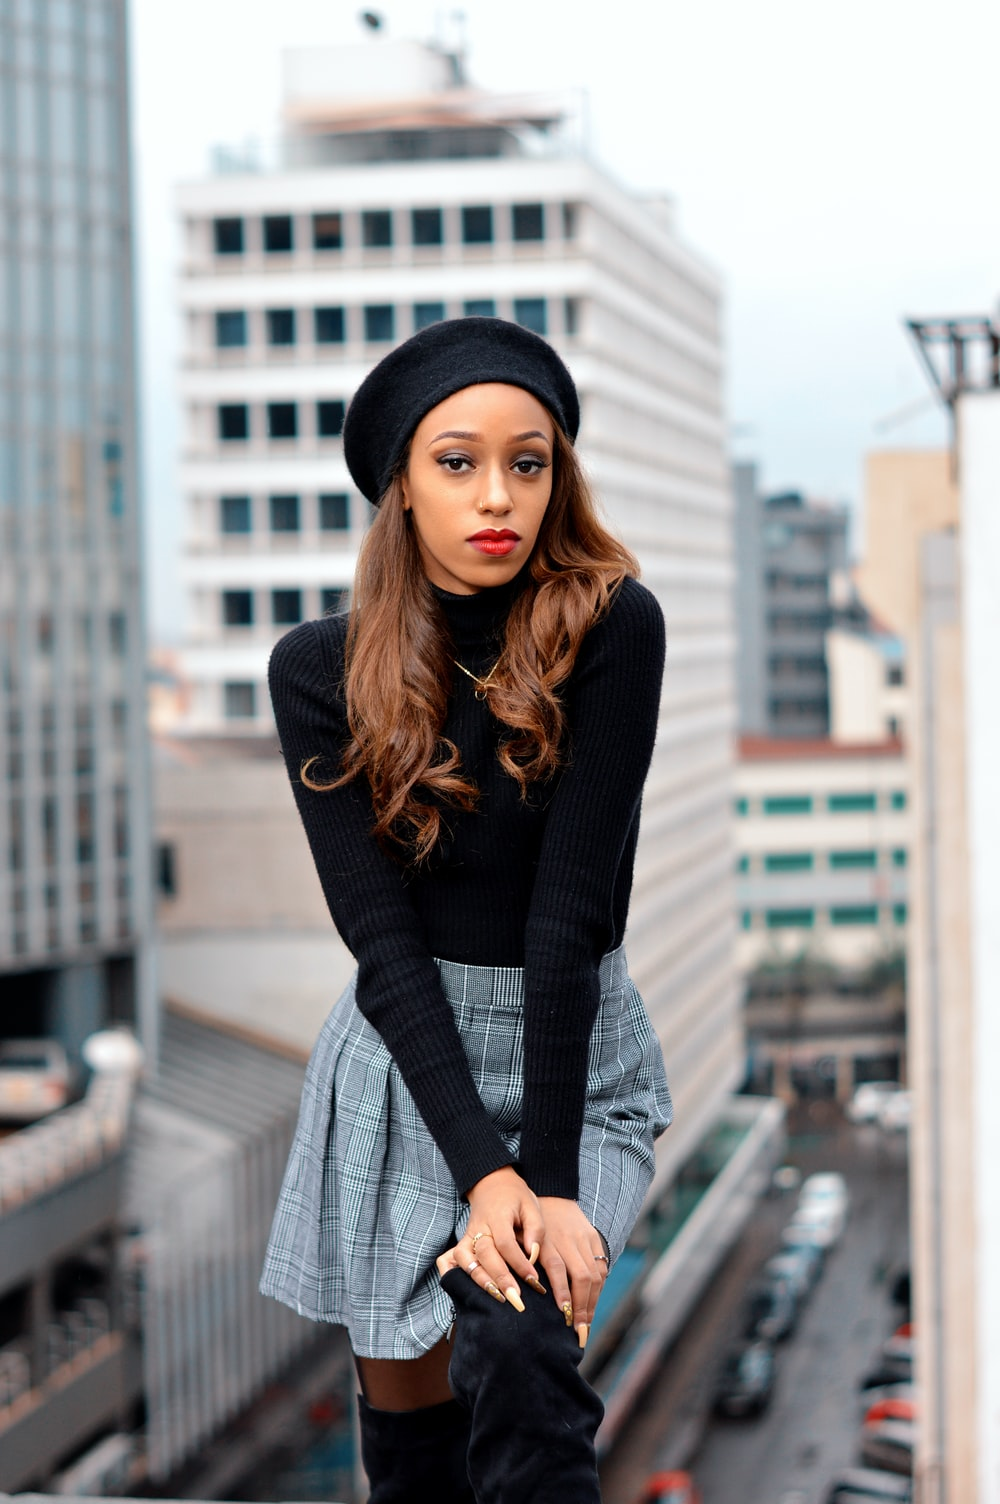 woman in black long sleeve shirt and gray skirt